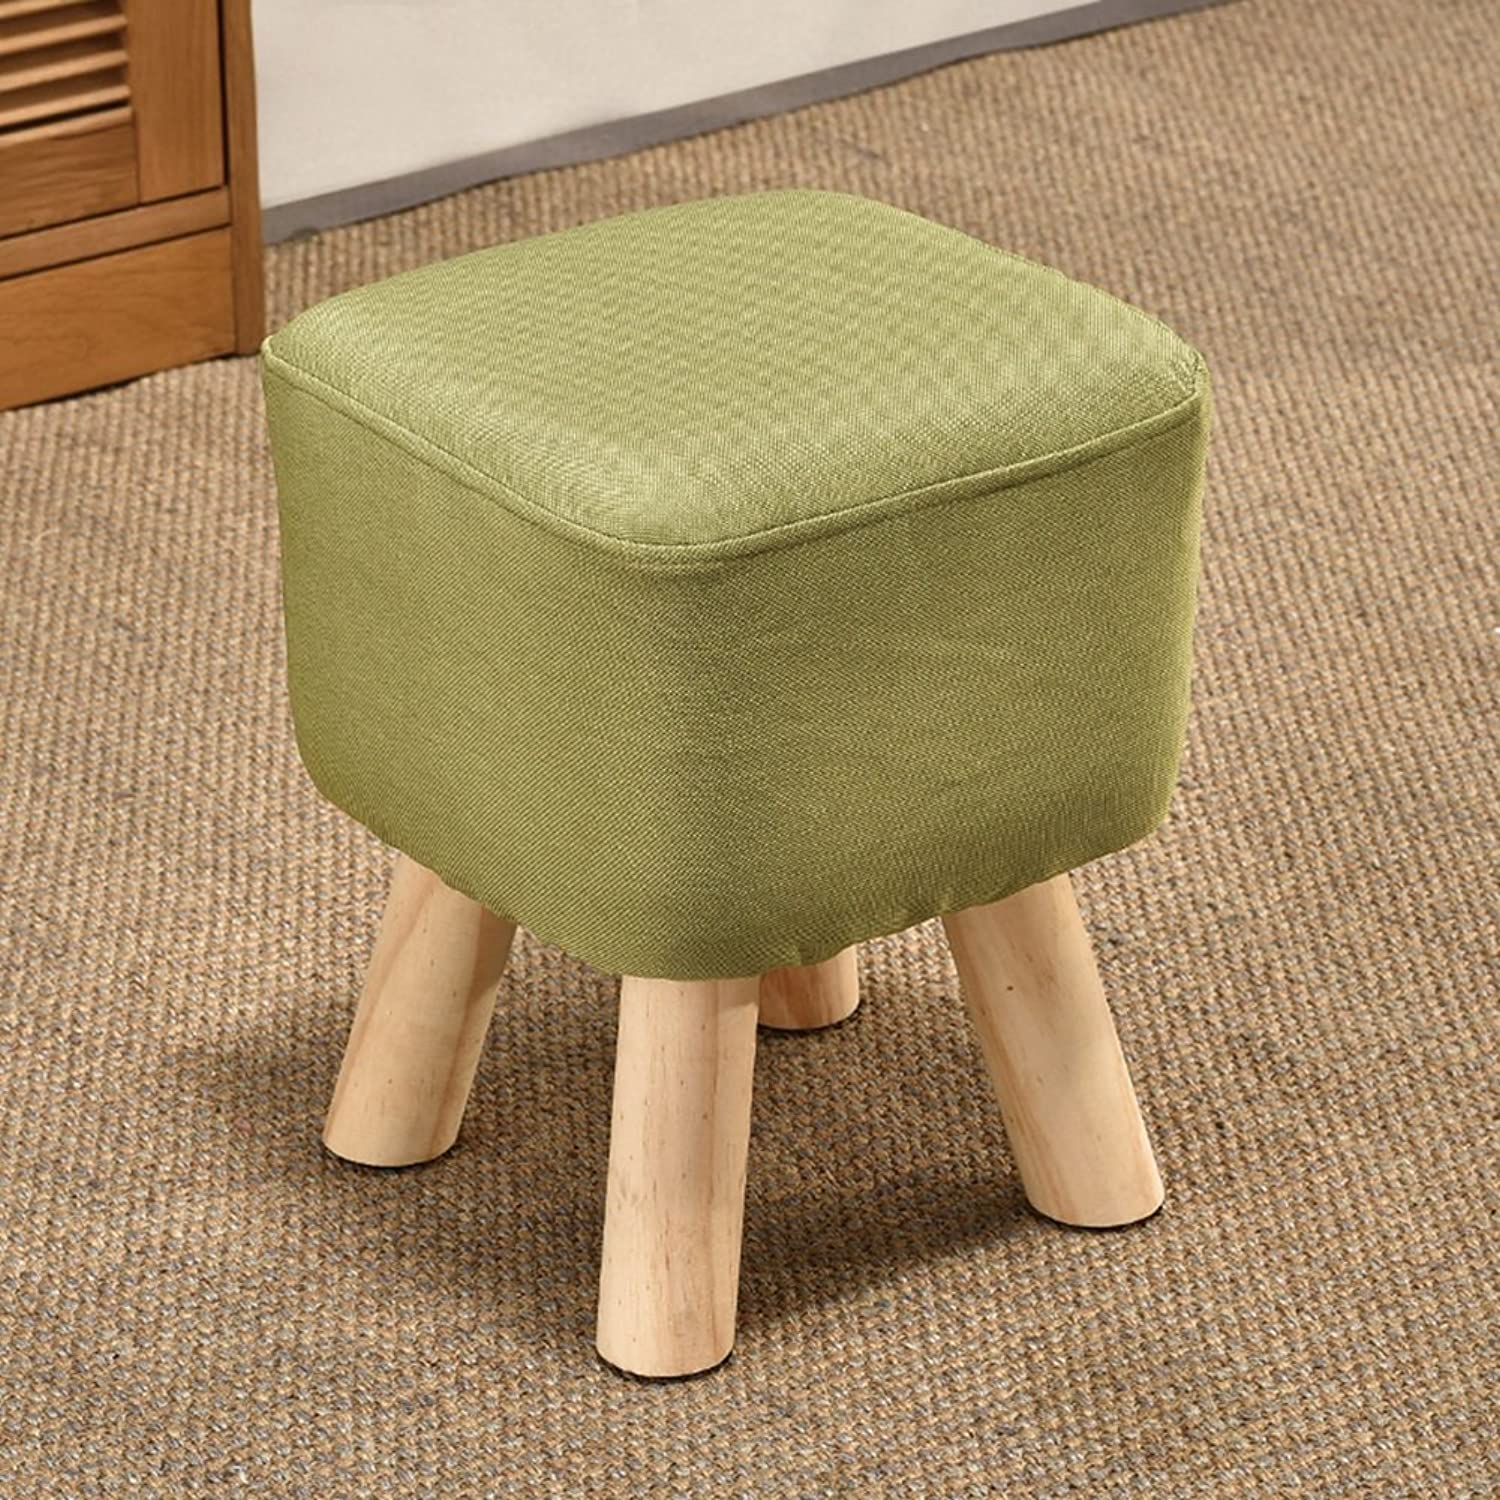 Footstool Sofa Stool Chair Seat Coffee Table Soft Solid Wood Frame Change Small shoes Linen colorful, 5 colors Available, 28x28x34CM (color   Green)